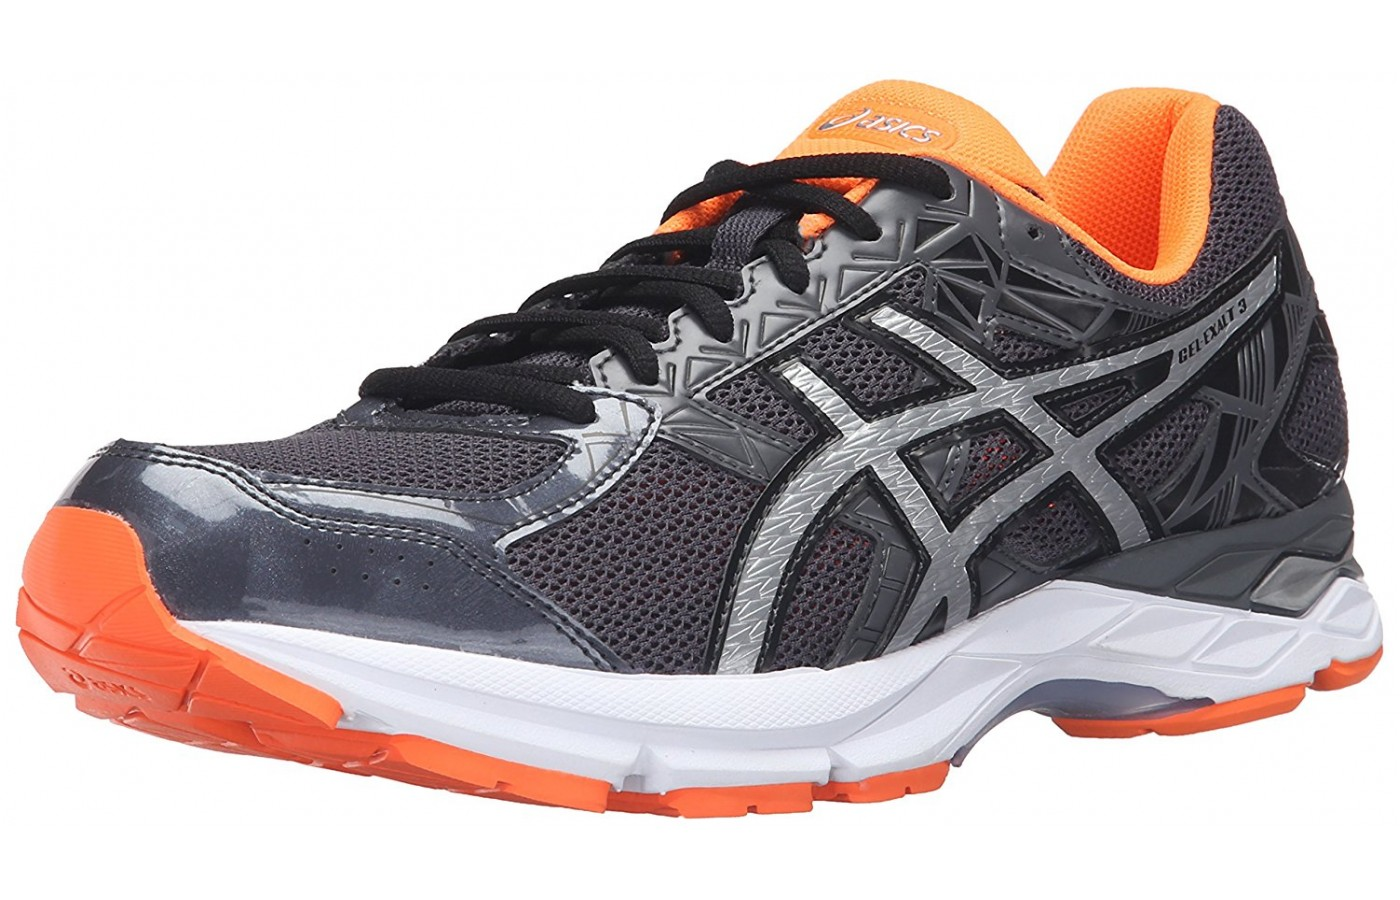 f99592beb6b3 Asics Gel Exalt 3 Tested for Performance in 2019